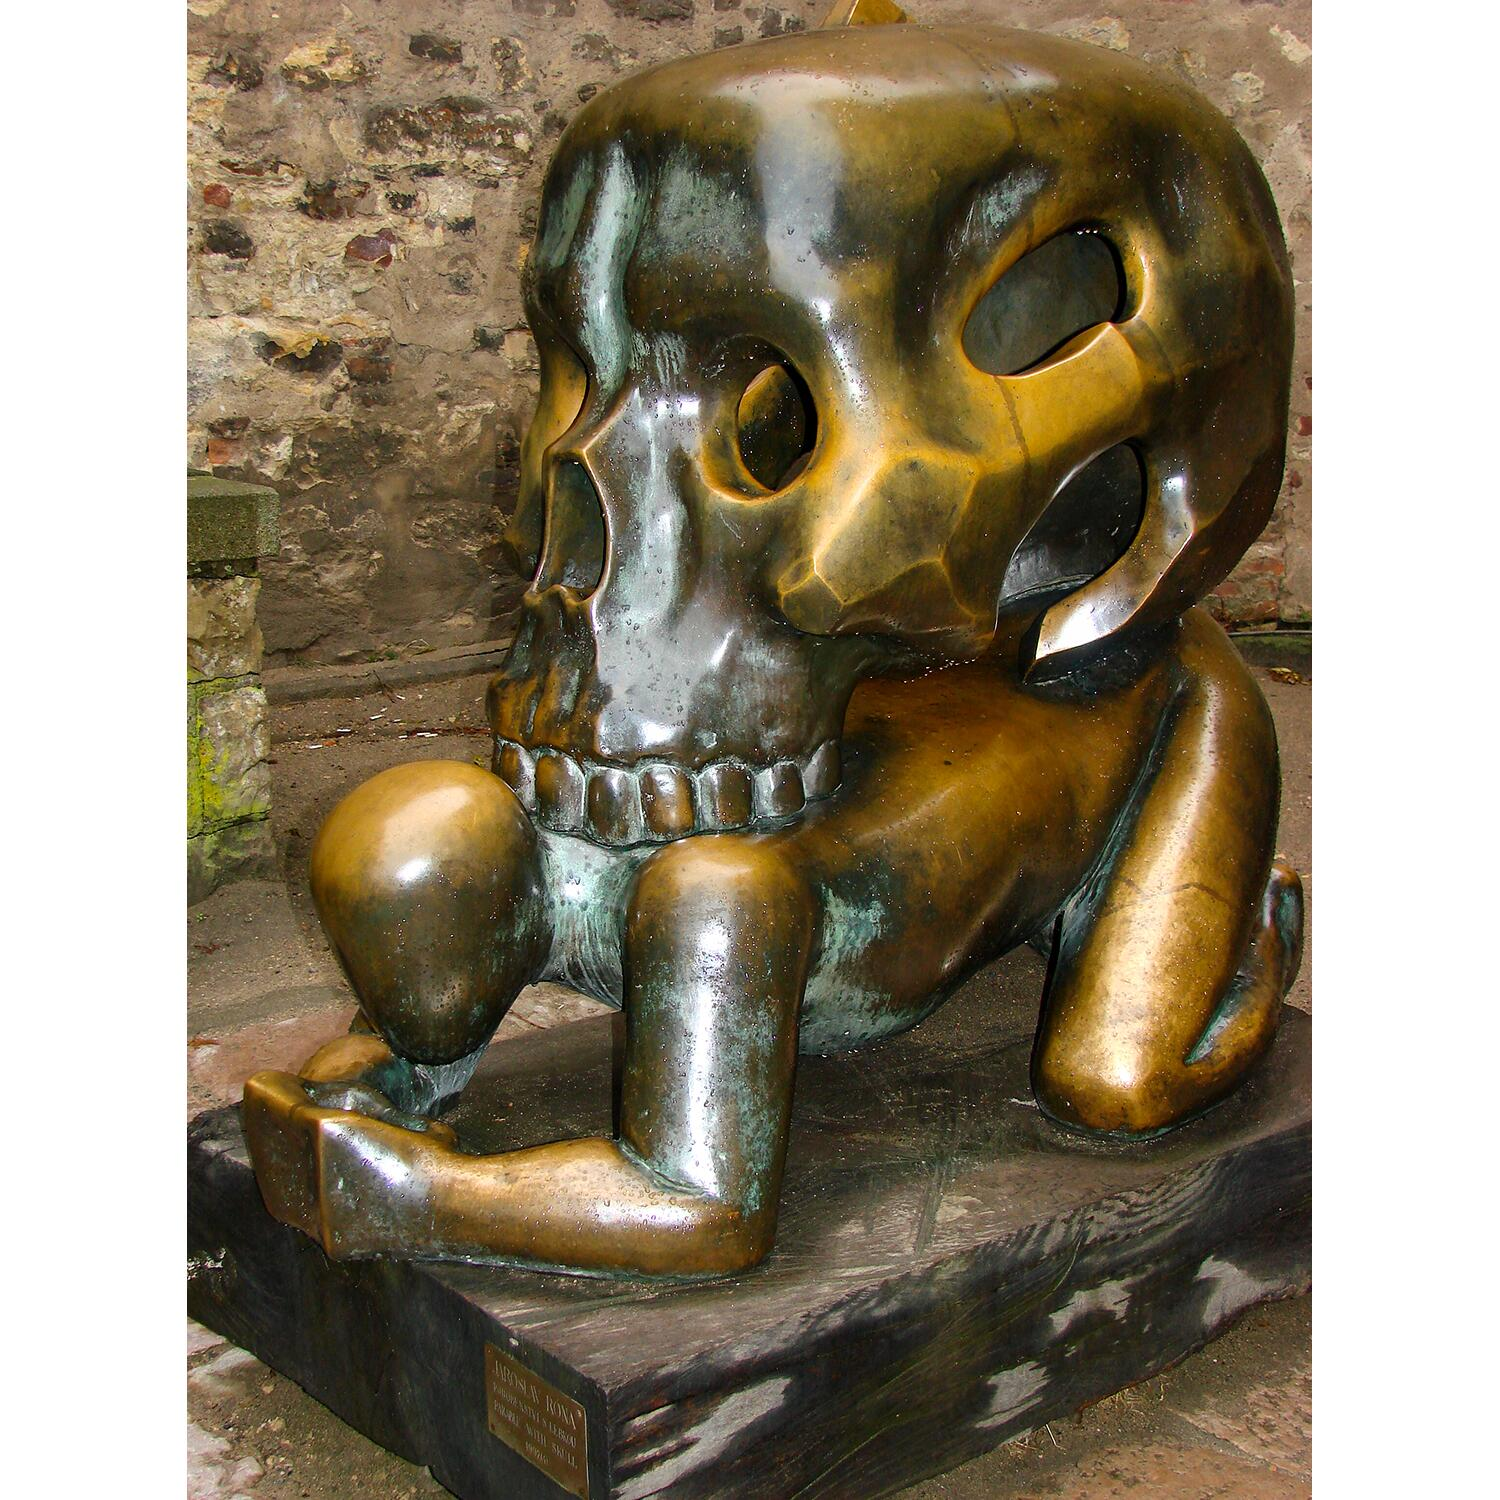 05_SkullAttractions__ParableWithSkull_5 Parable_with_Skull_-_Sculpture_by_Jaroslaw_Rona_